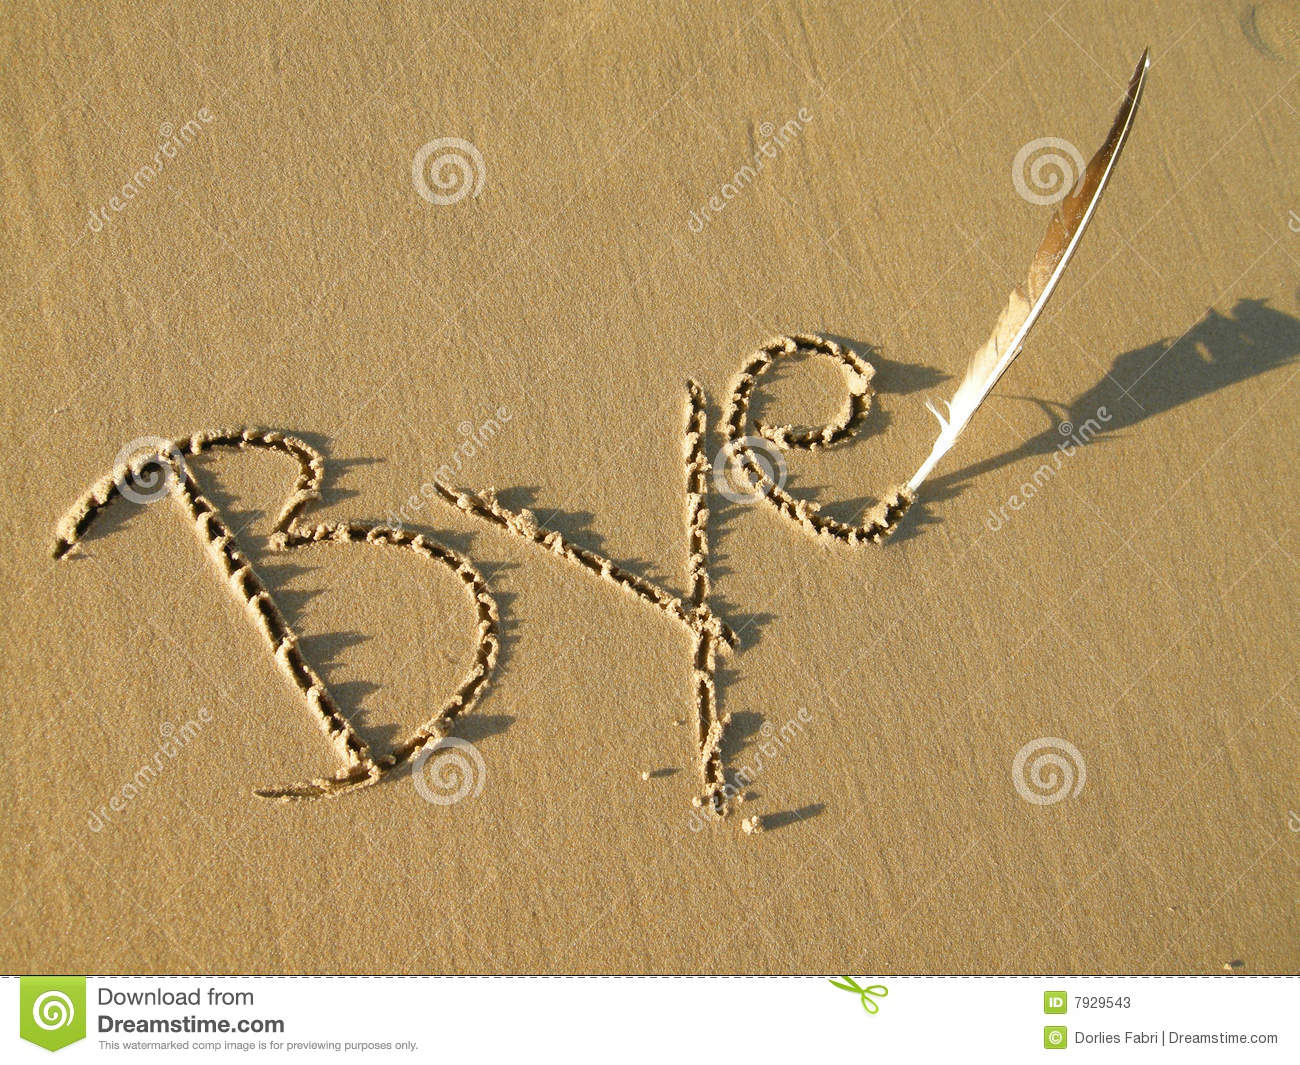 The word BYE written in the sand with a bird feather in sunshine.